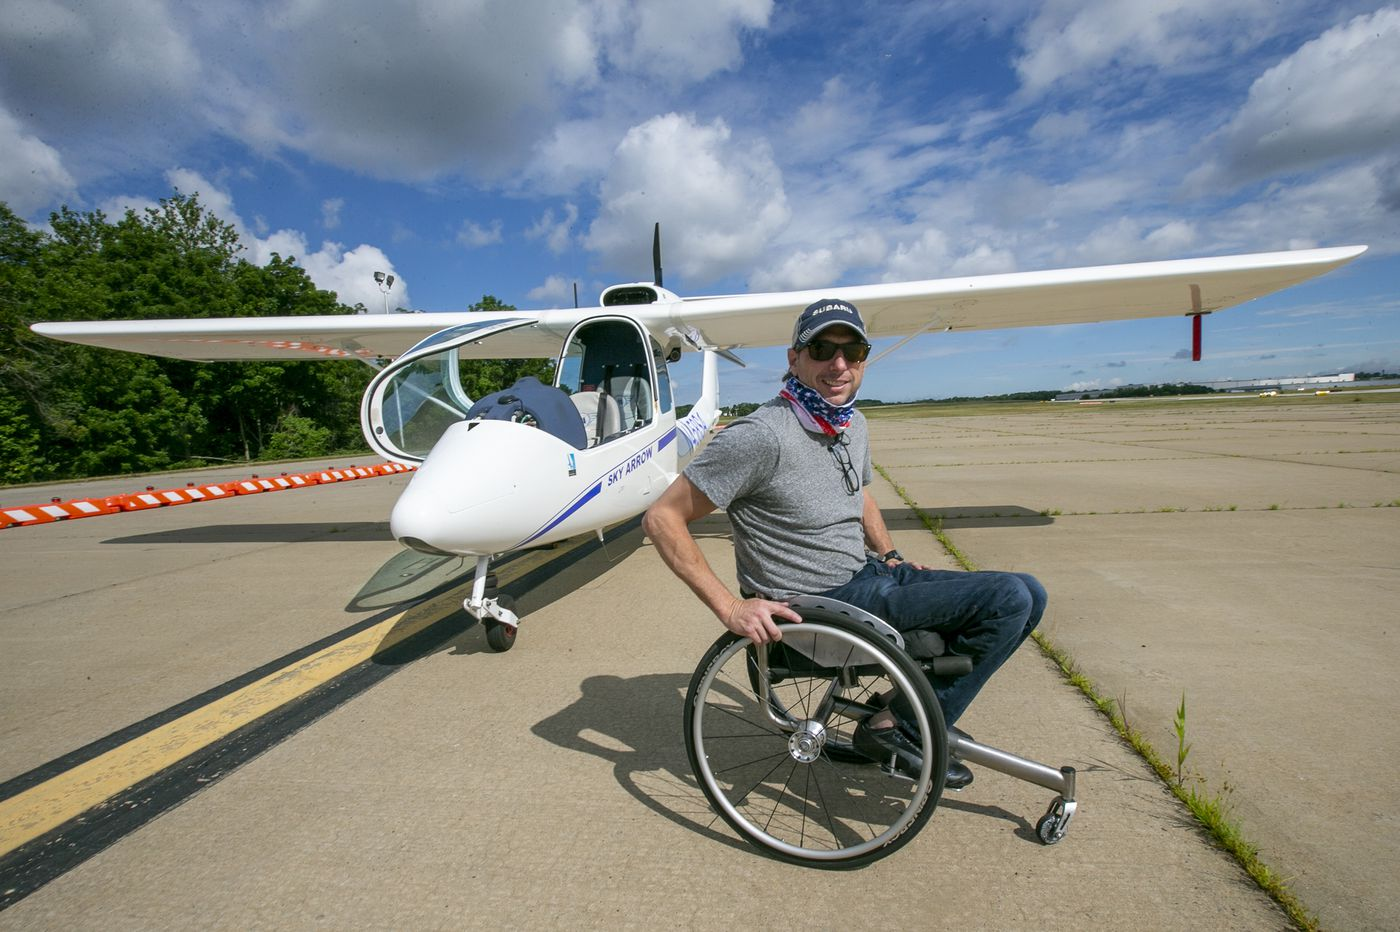 The Skies Beckoned This Pilot, and a Disability Wasn't Going to Stop Him